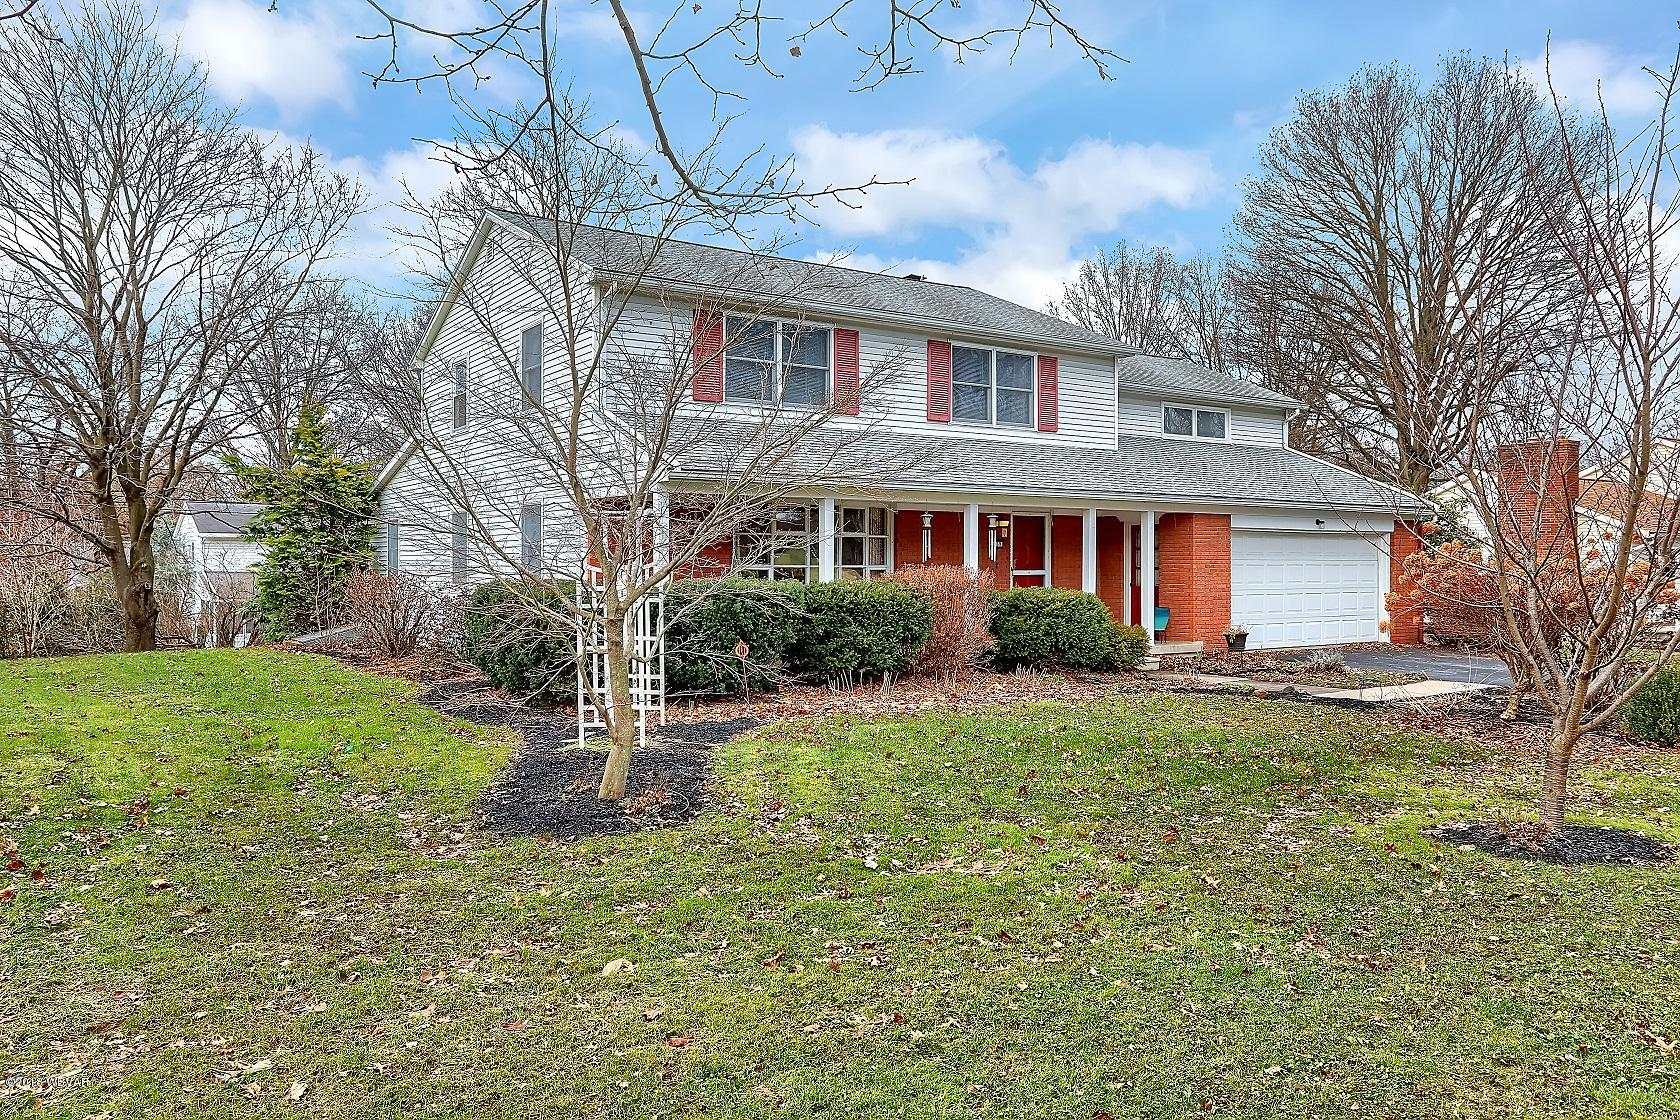 959 COUNTRY CLUB DRIVE,Williamsport,PA 17701,4 Bedrooms Bedrooms,3 BathroomsBathrooms,Residential,COUNTRY CLUB,WB-86032